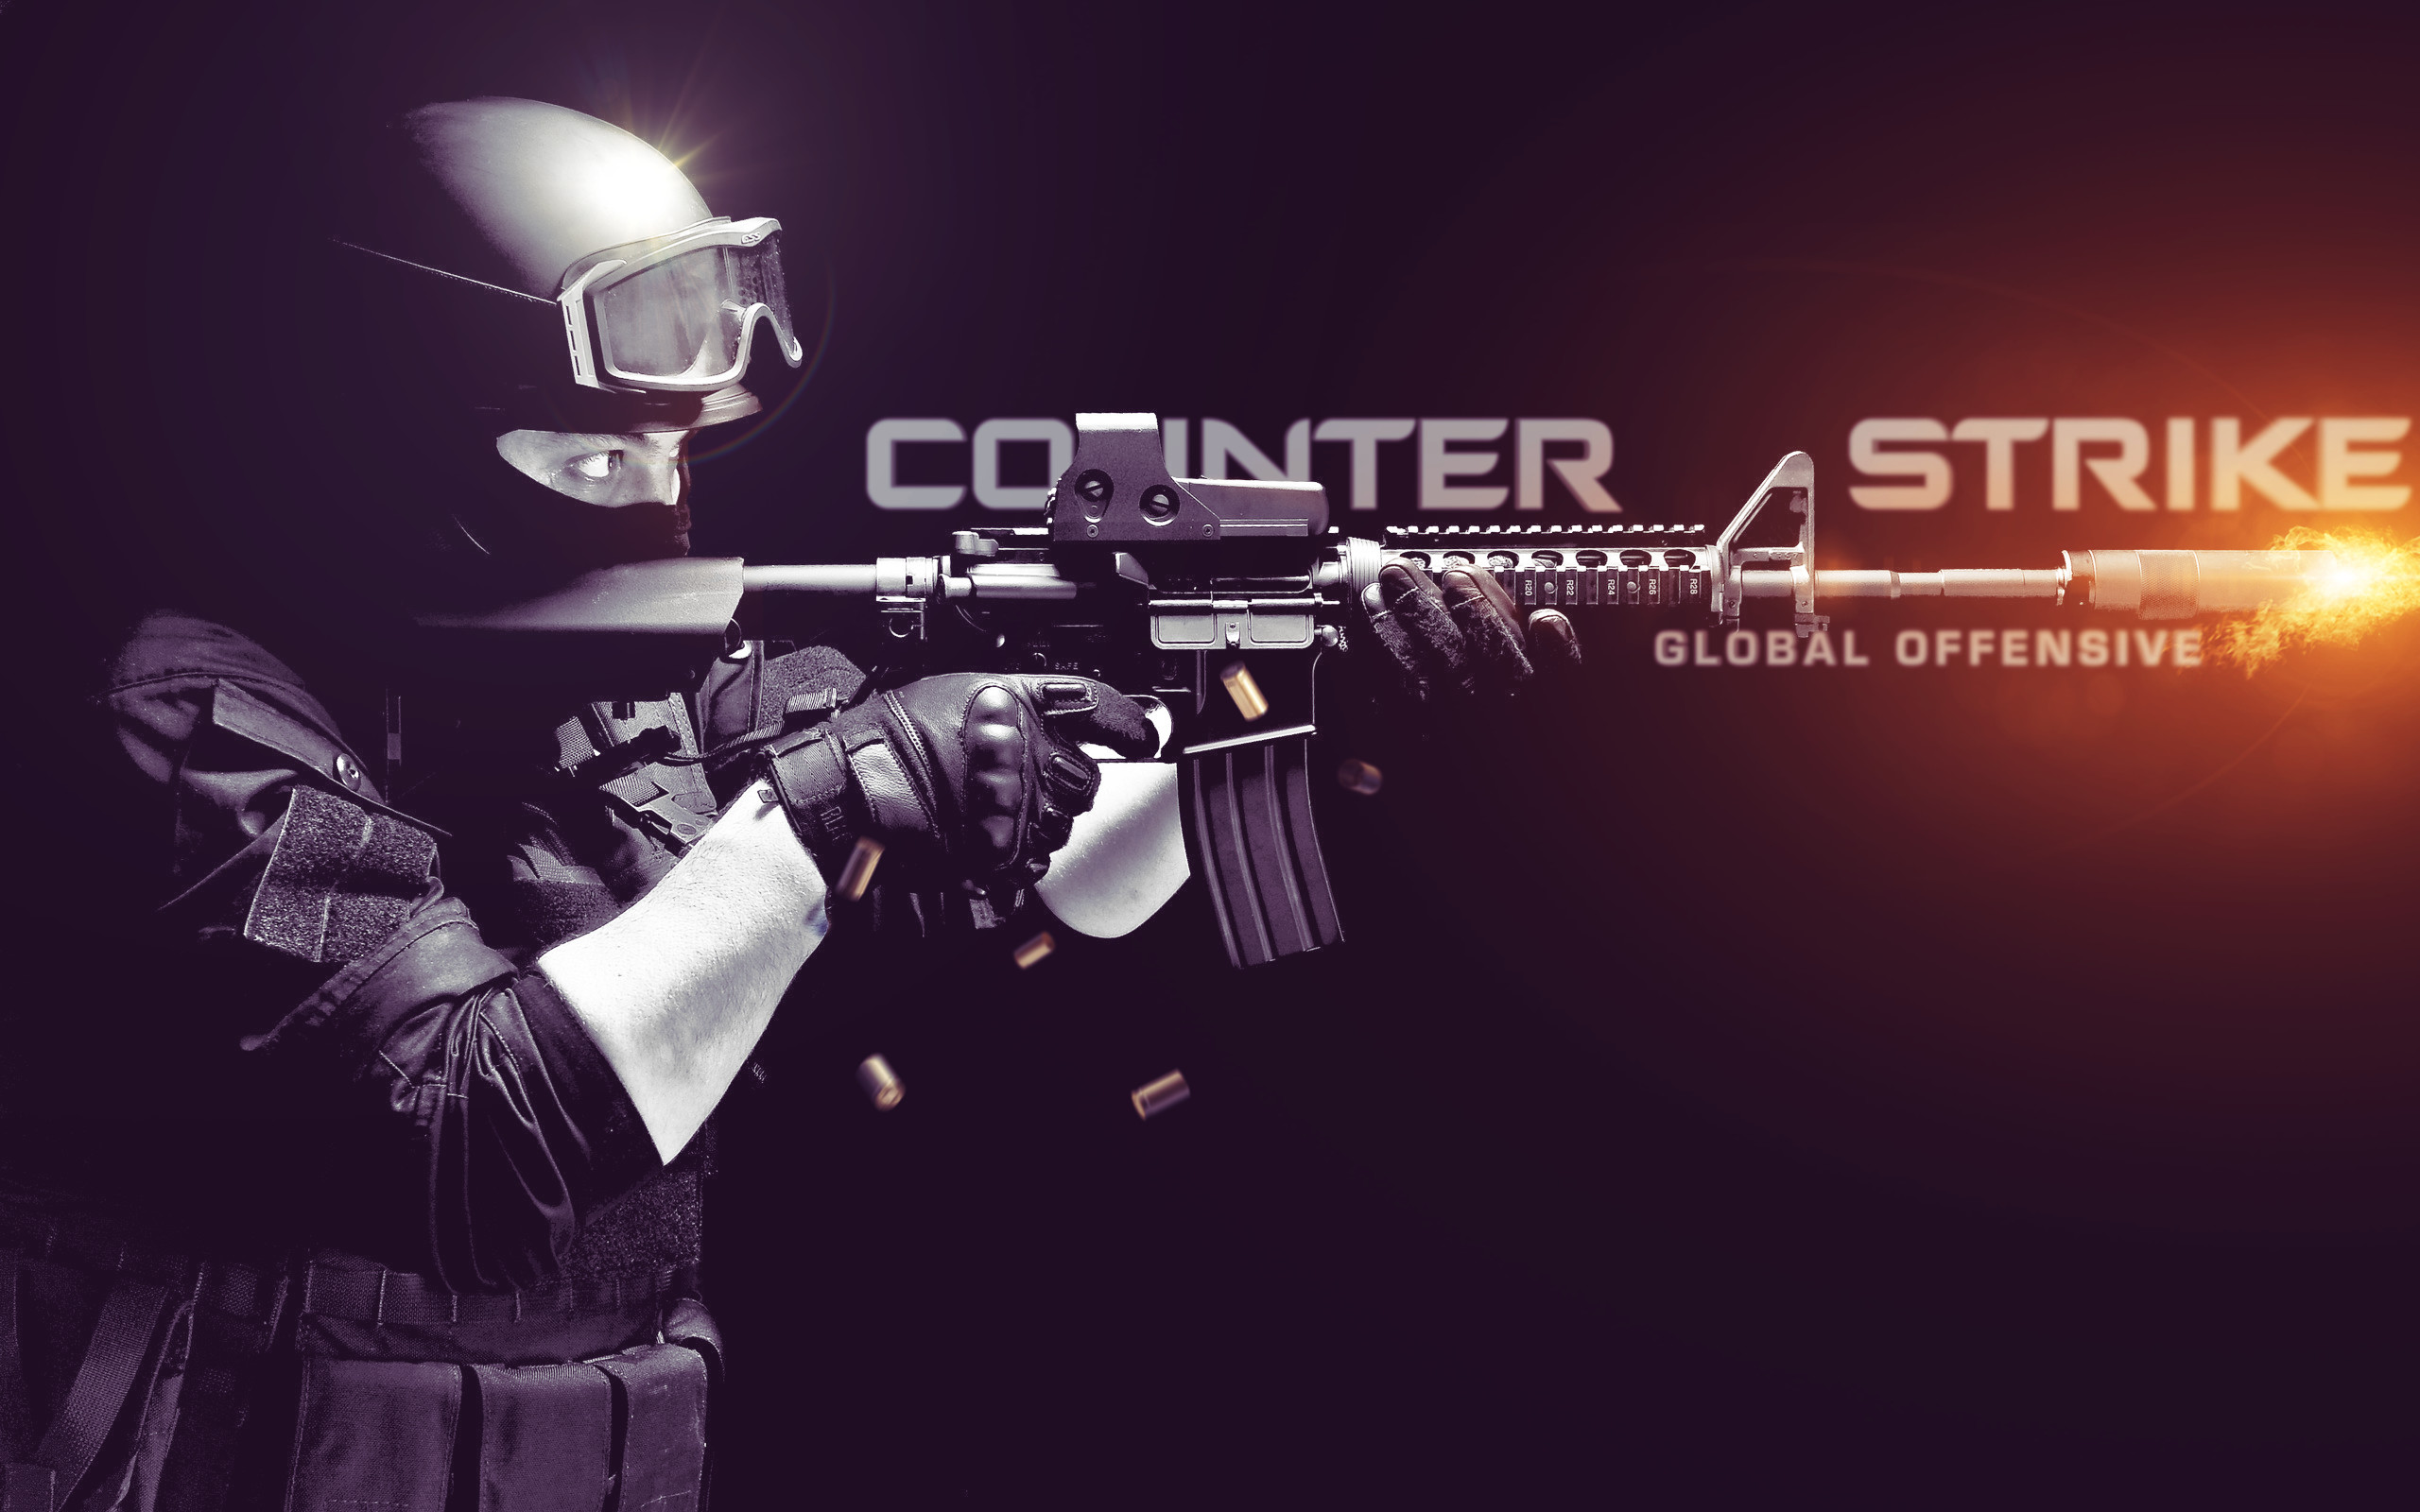 2560x1600 Counter-Strike: Global Offensive Wallpaper ...